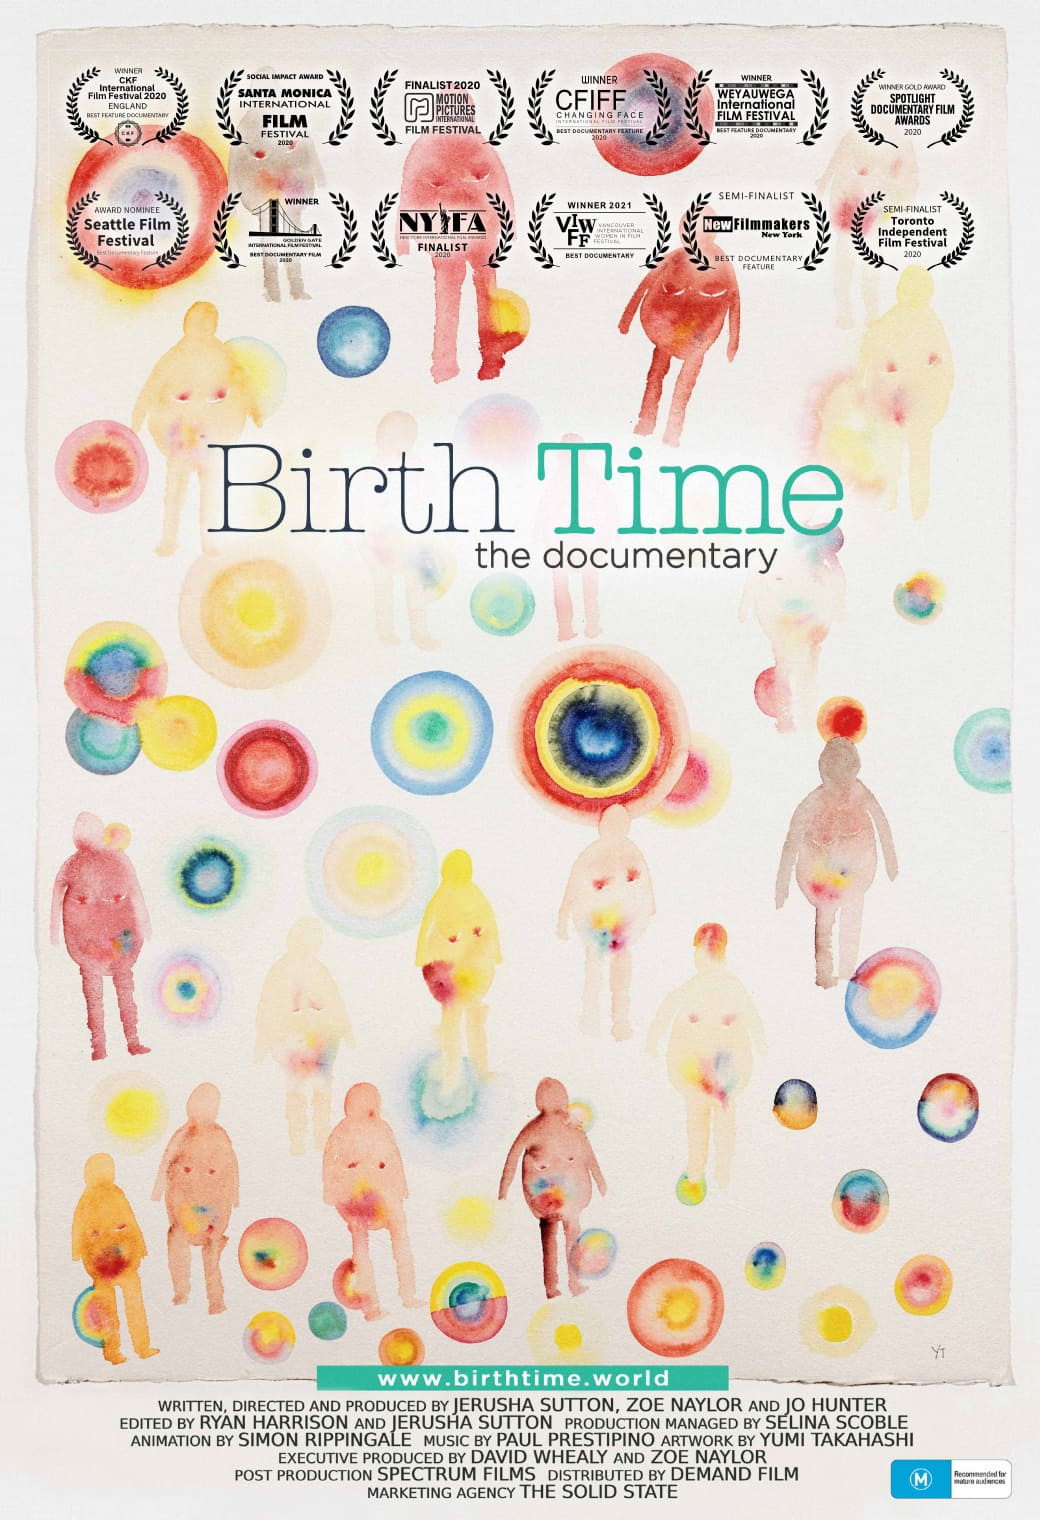 Birth Time poster with colourful illustrations of pregnant figures and spots.